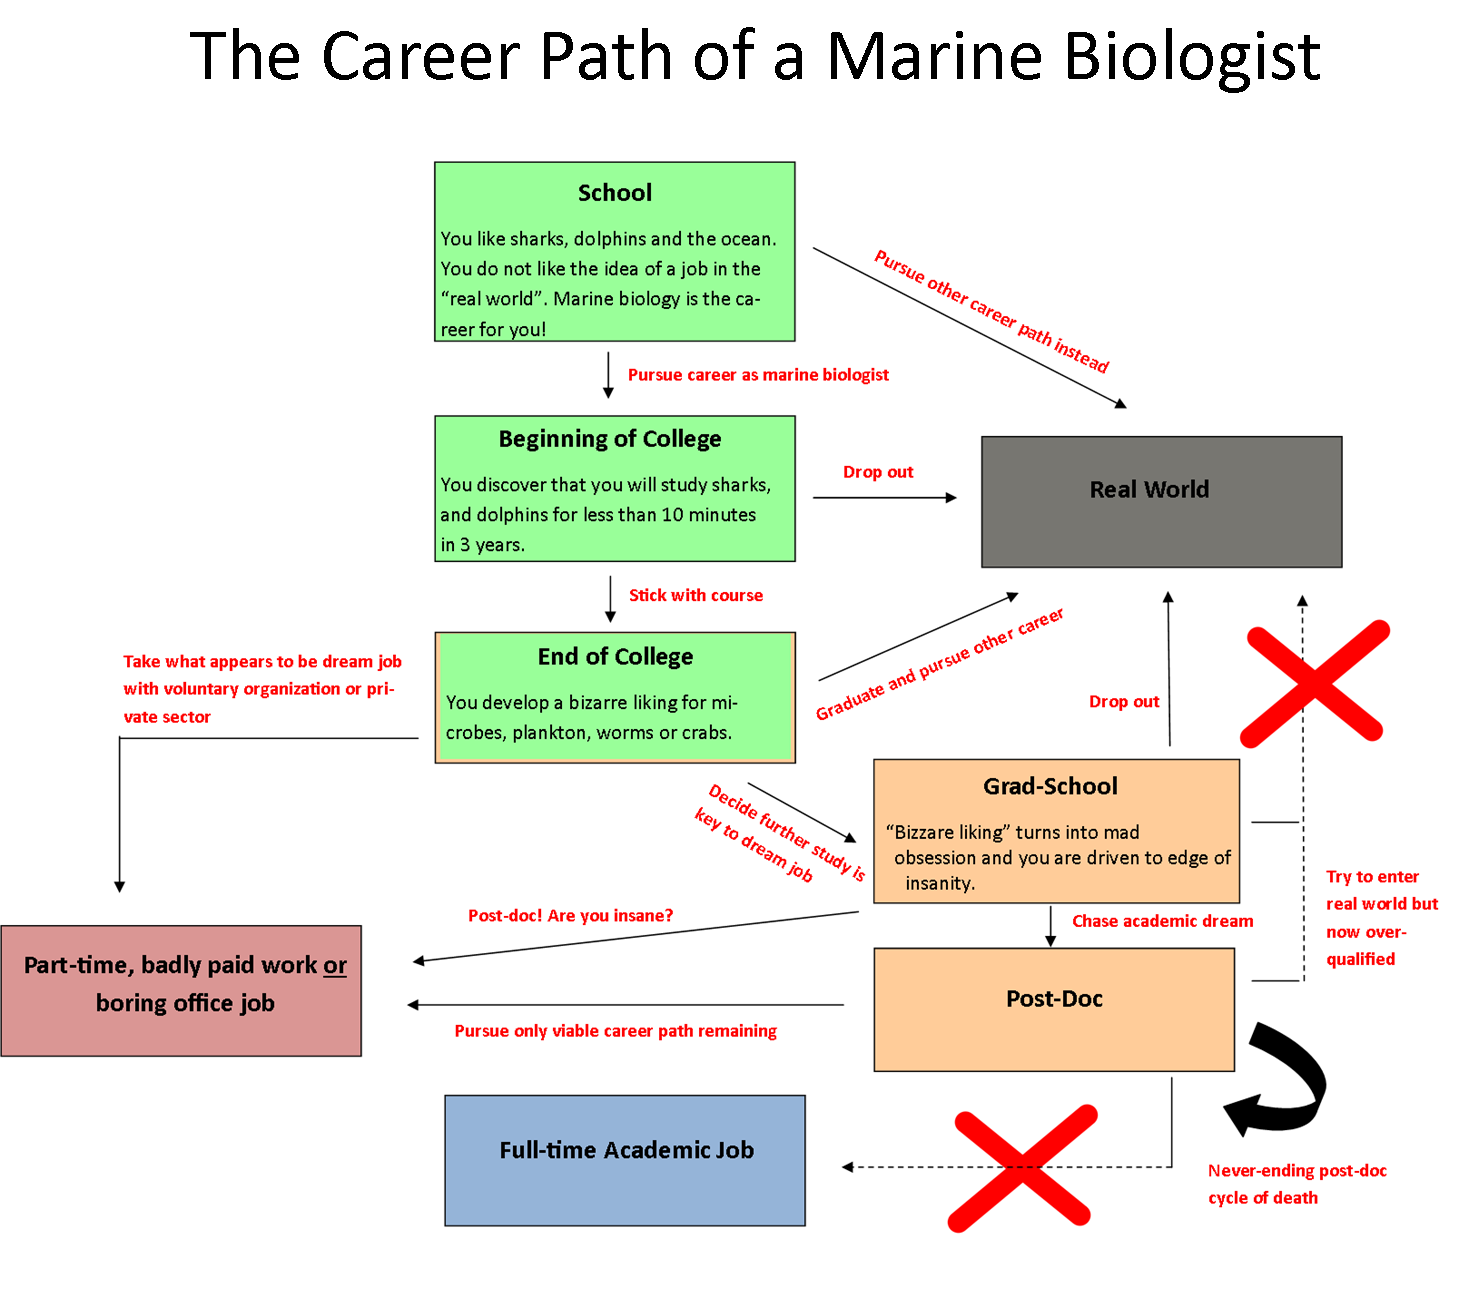 Marine biologist salary becoming a marine biologist for Fishing guide salary